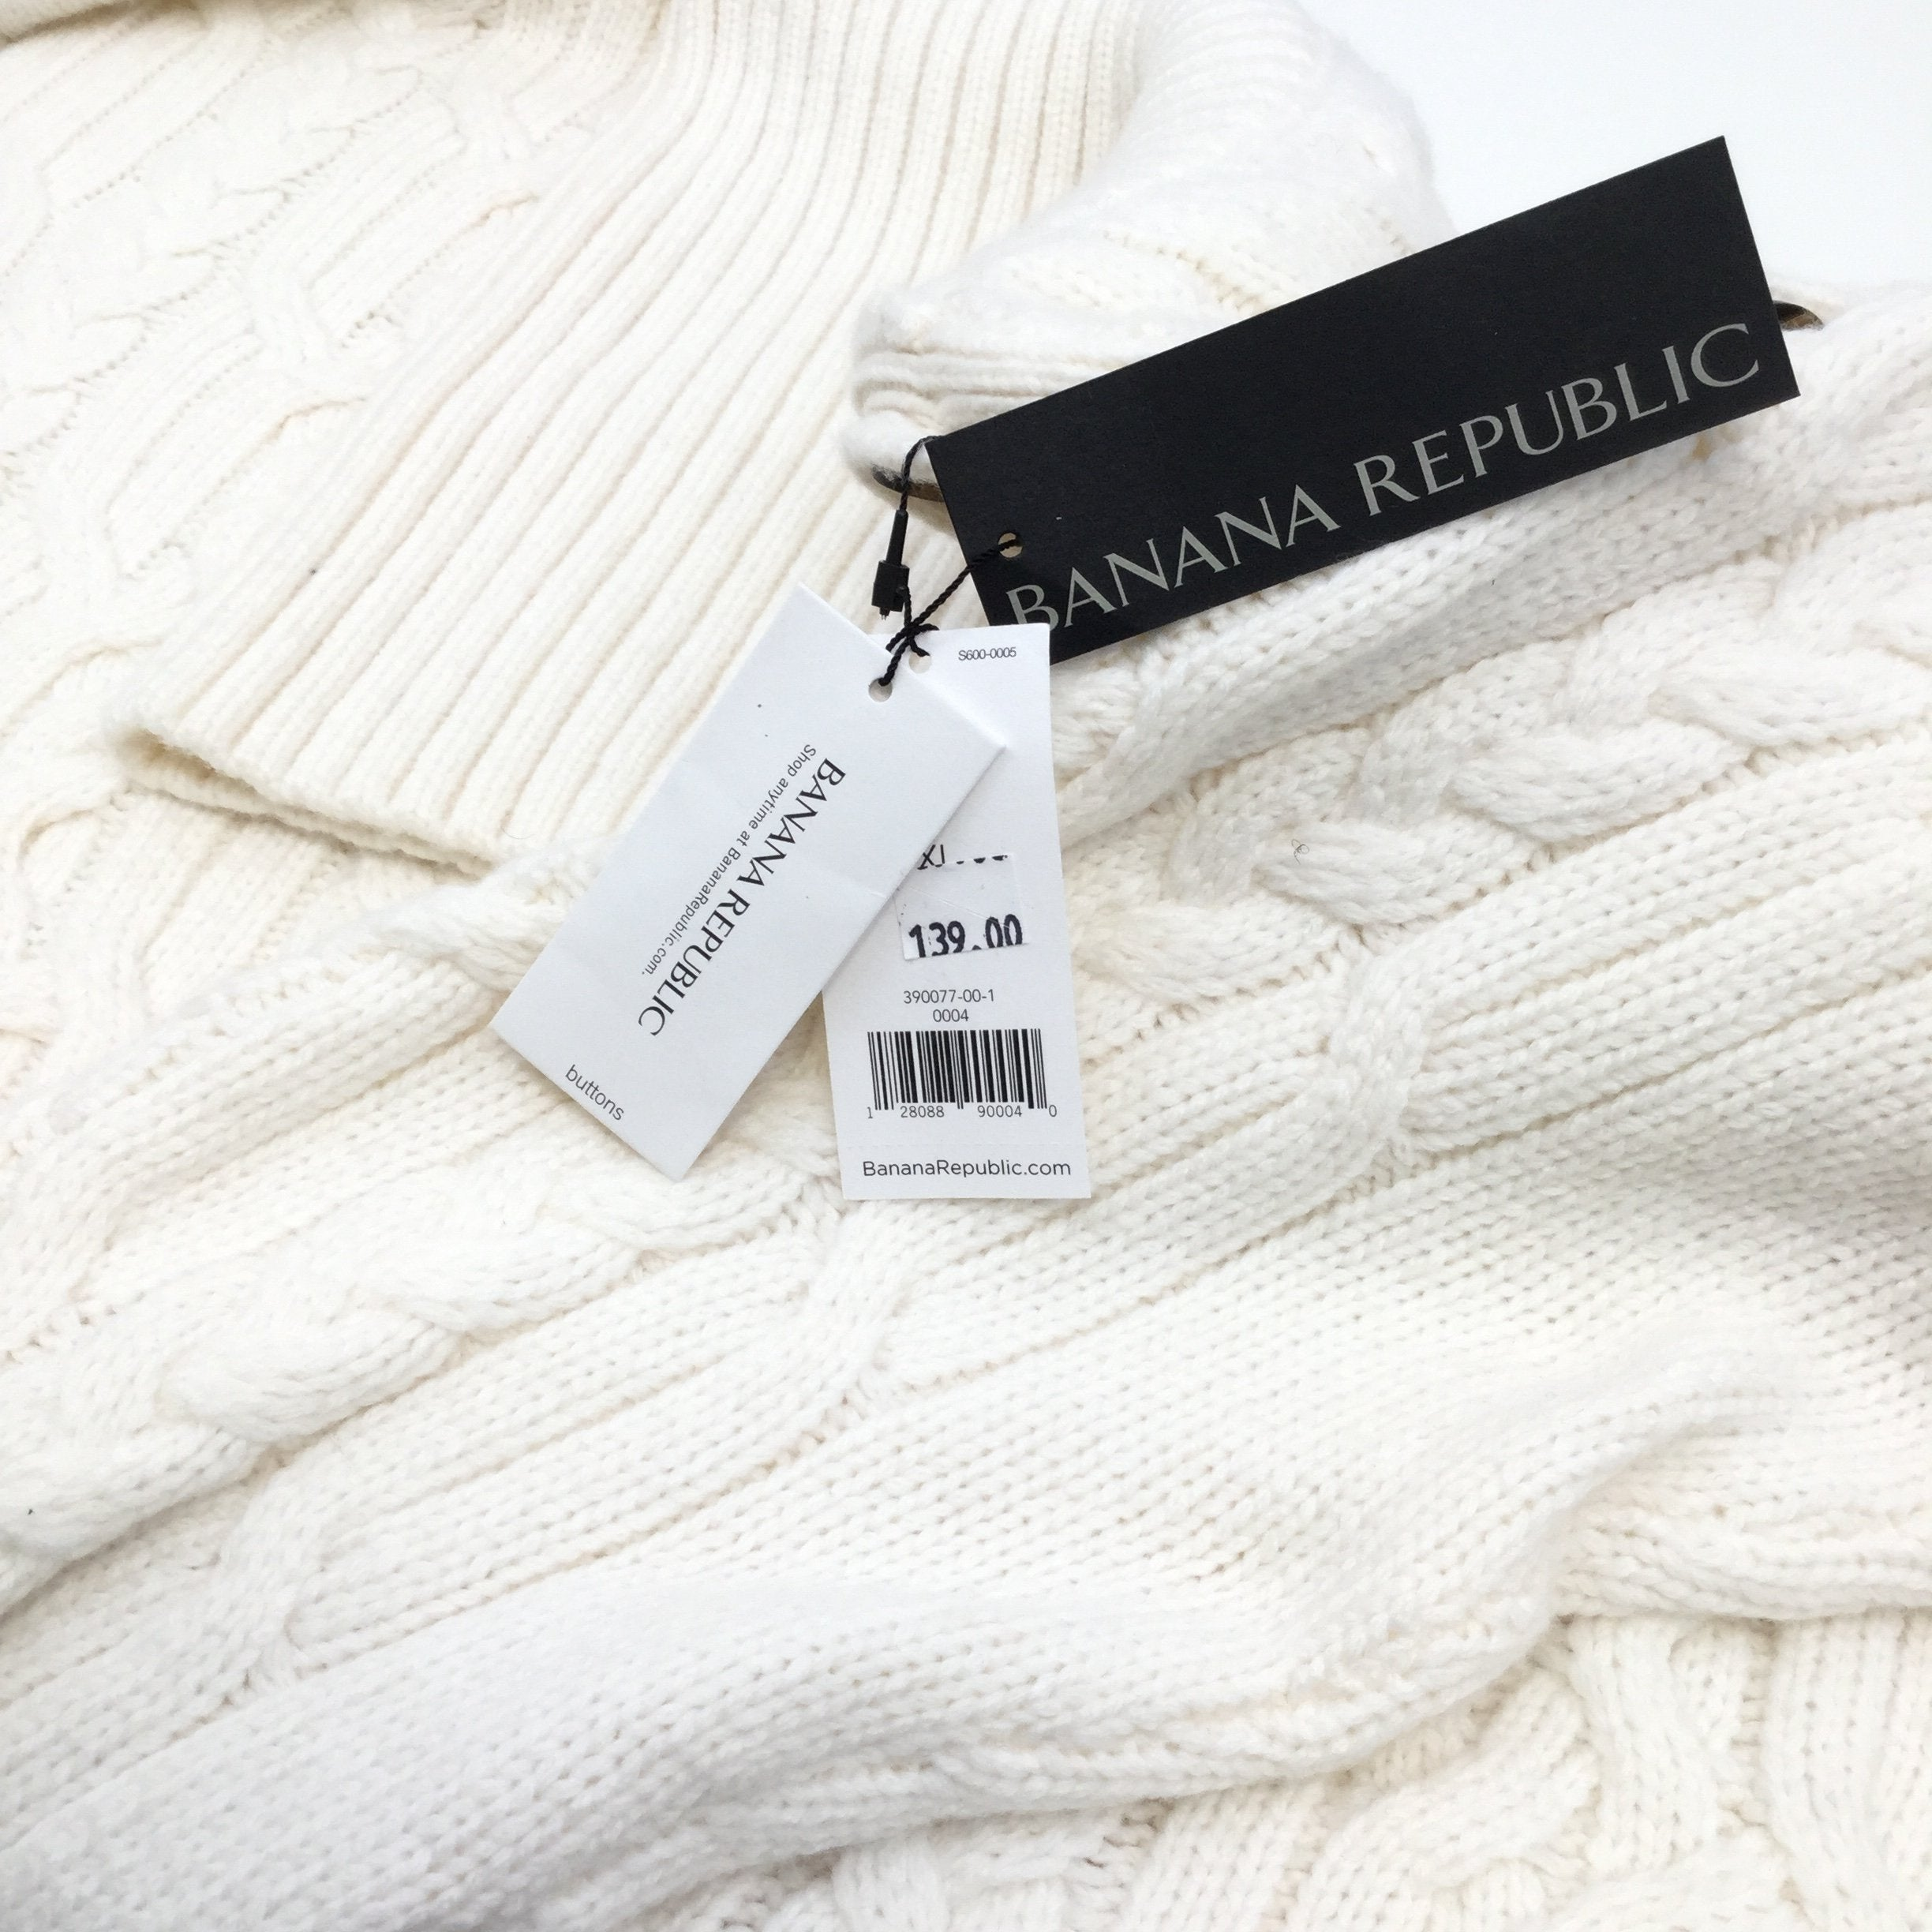 Banana Republic Sweater Heavyweight Size:xl - <P>BANANA REPUBLIC CREAM COLORED SWEATER WITH BUTTON NECK. SIZE XL MADE OF NYLON, POLYESTER AND MERINO WOOL.</P>